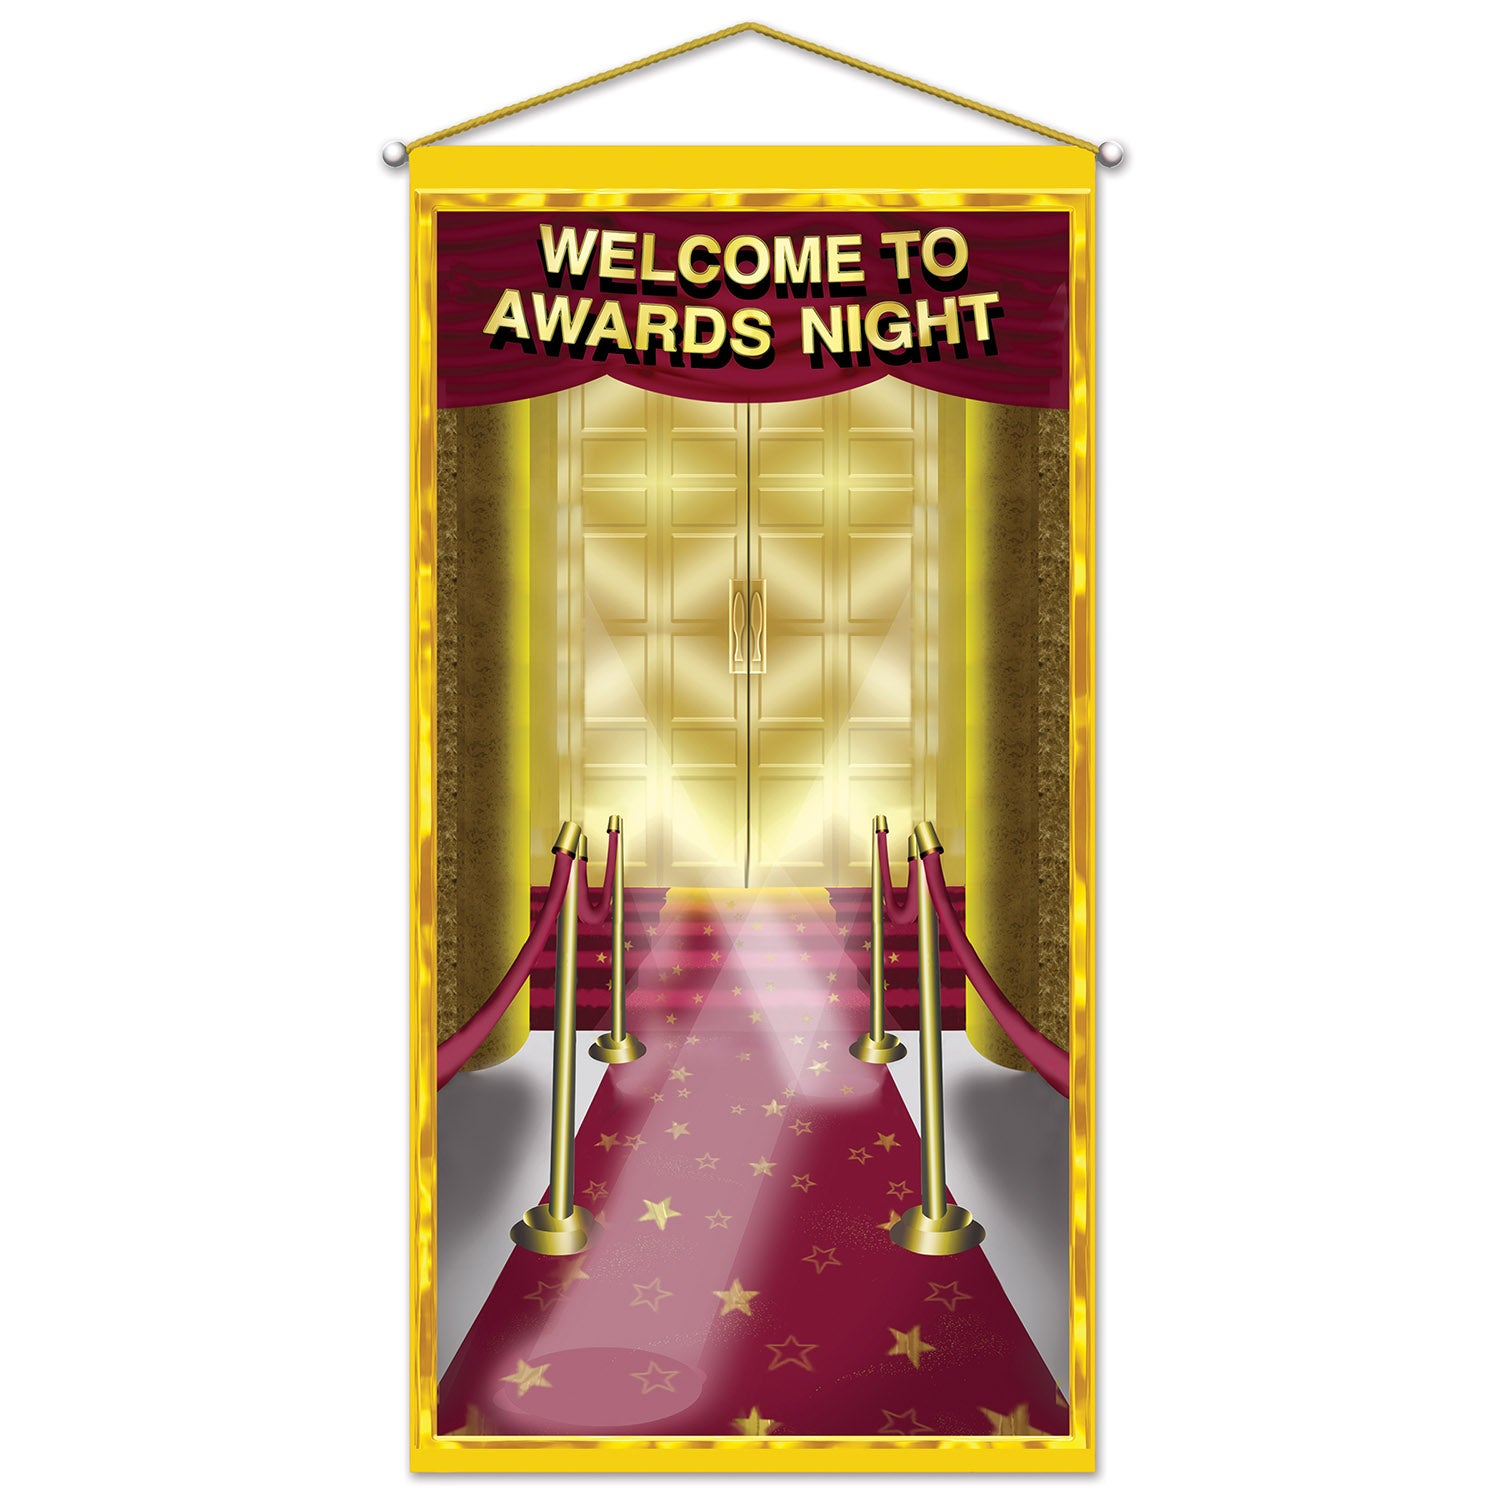 Awards Night Door/Wall Panel by Beistle - Awards Night Theme Decorations